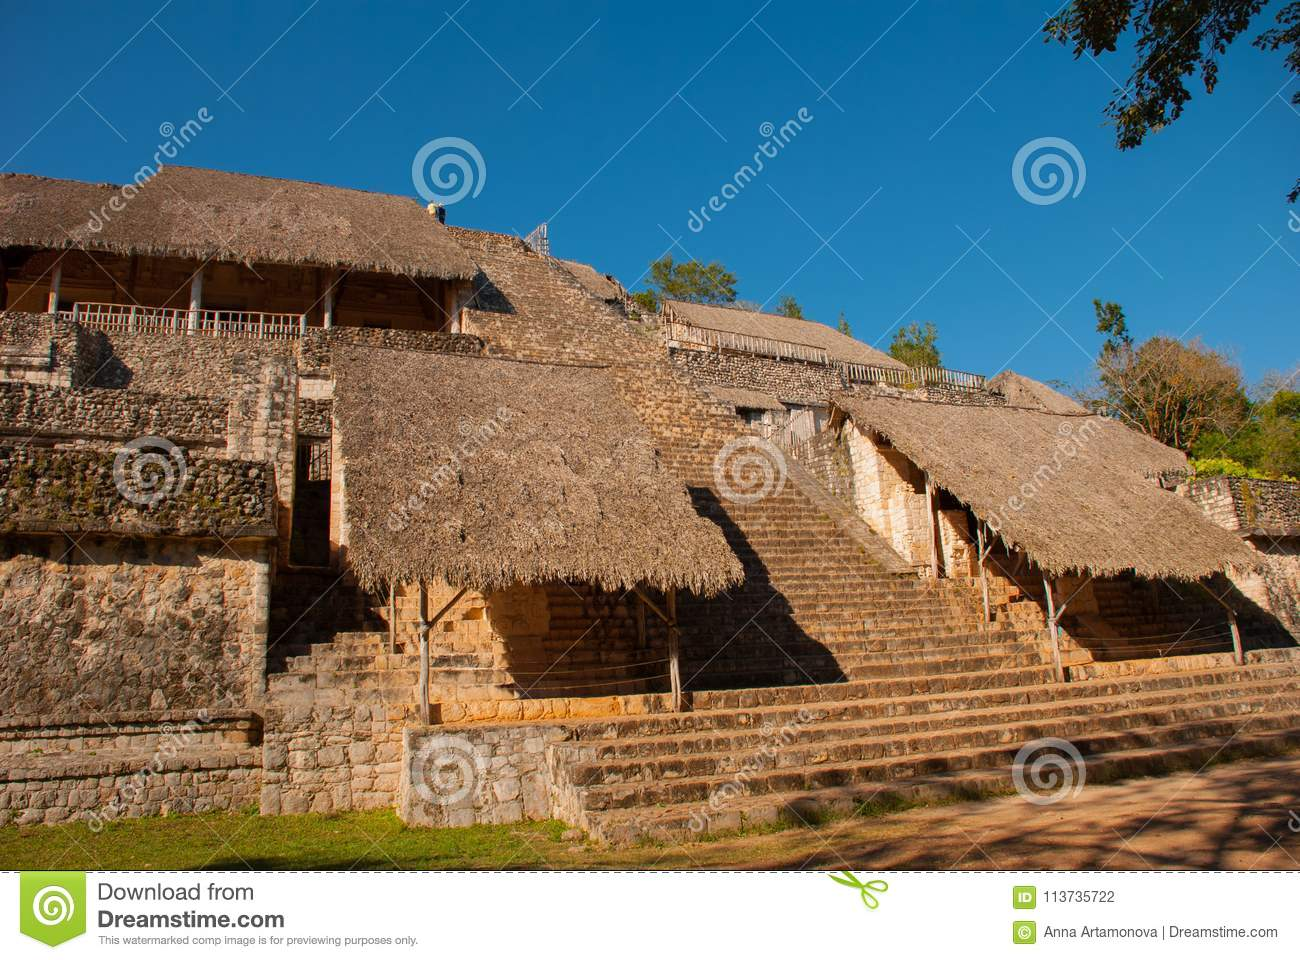 Majestic ruins in Ek Balam. Ek Balam is a Yucatec Maya archaeological site within the municipality of Temozon, Yucatan, Mexico.